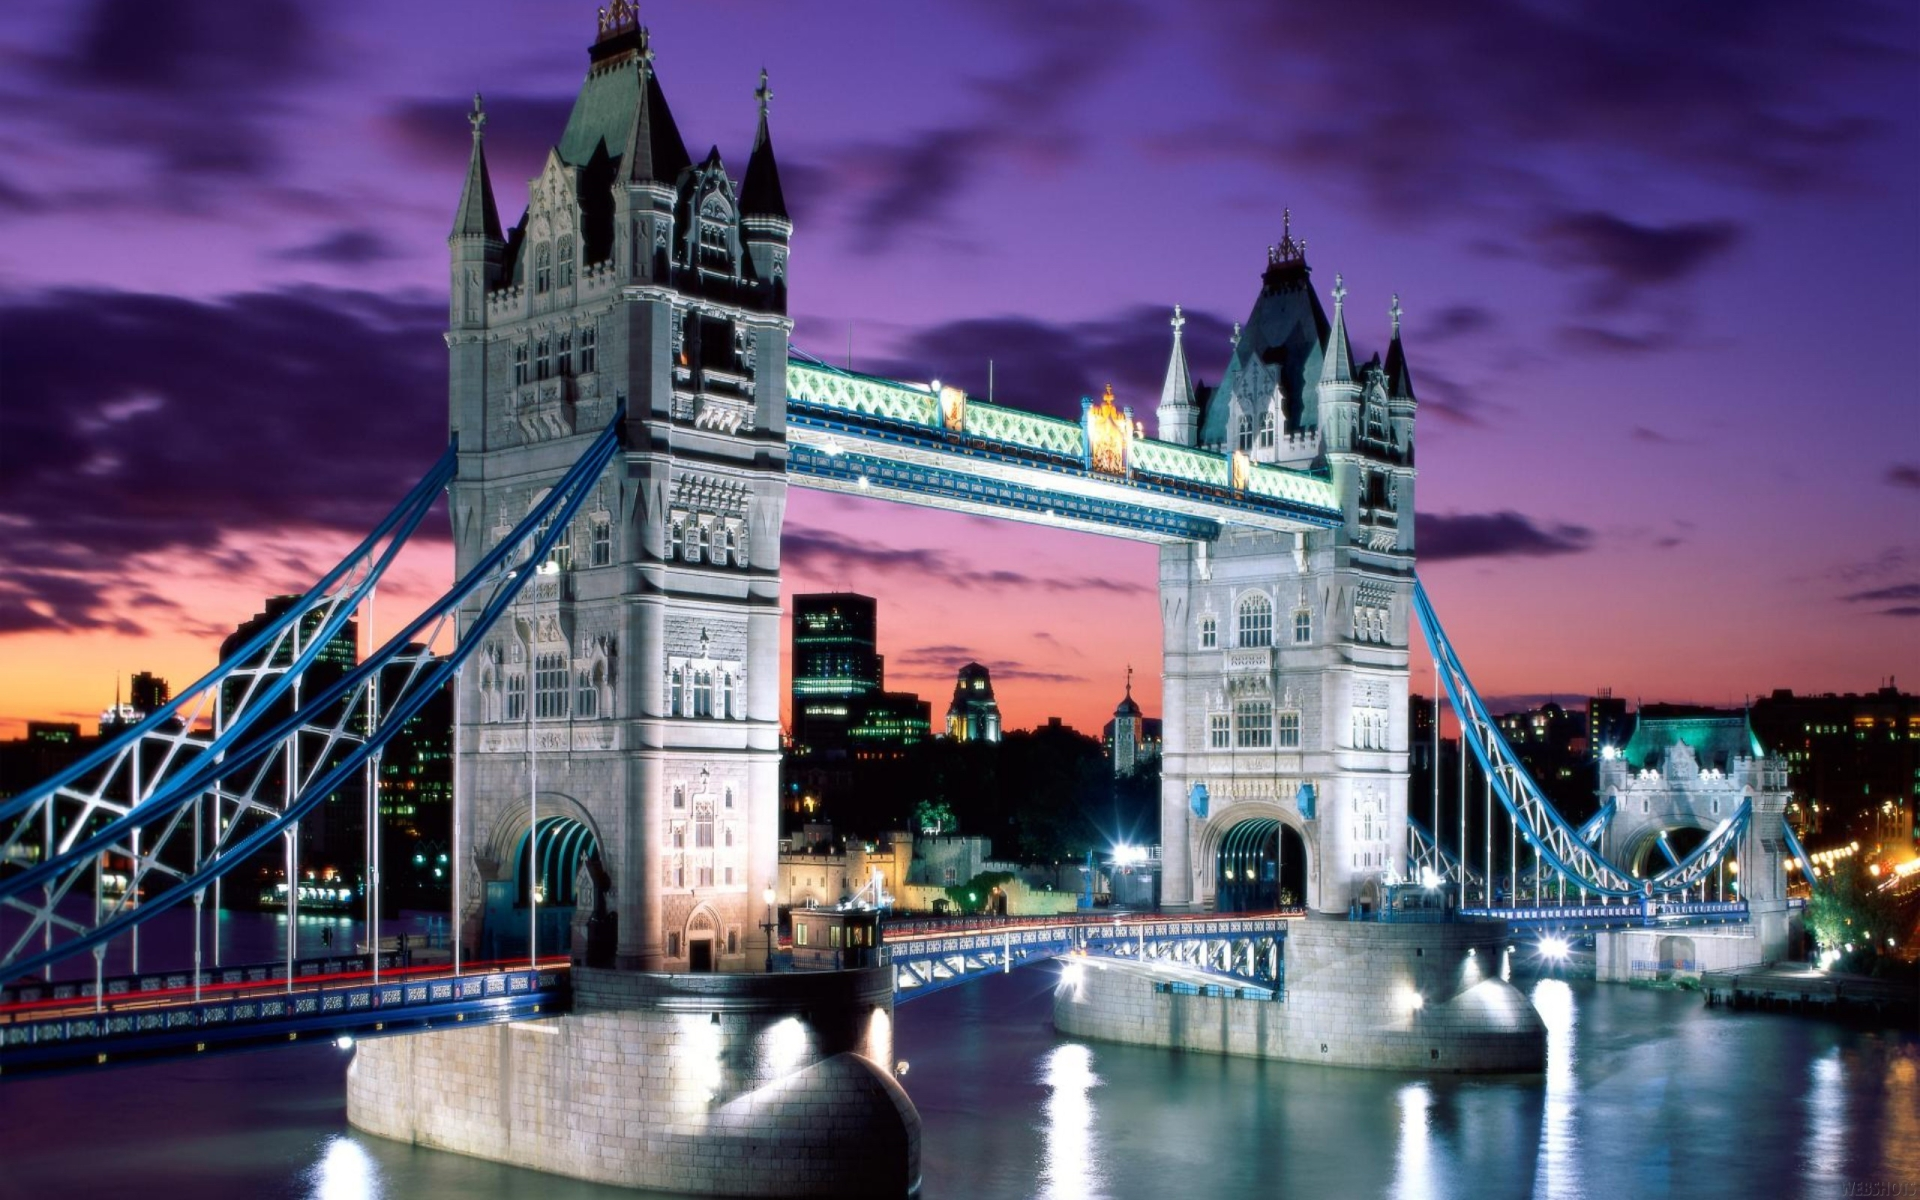 Puente De London Hd 1920x1200 Imagenes Wallpapers Gratis